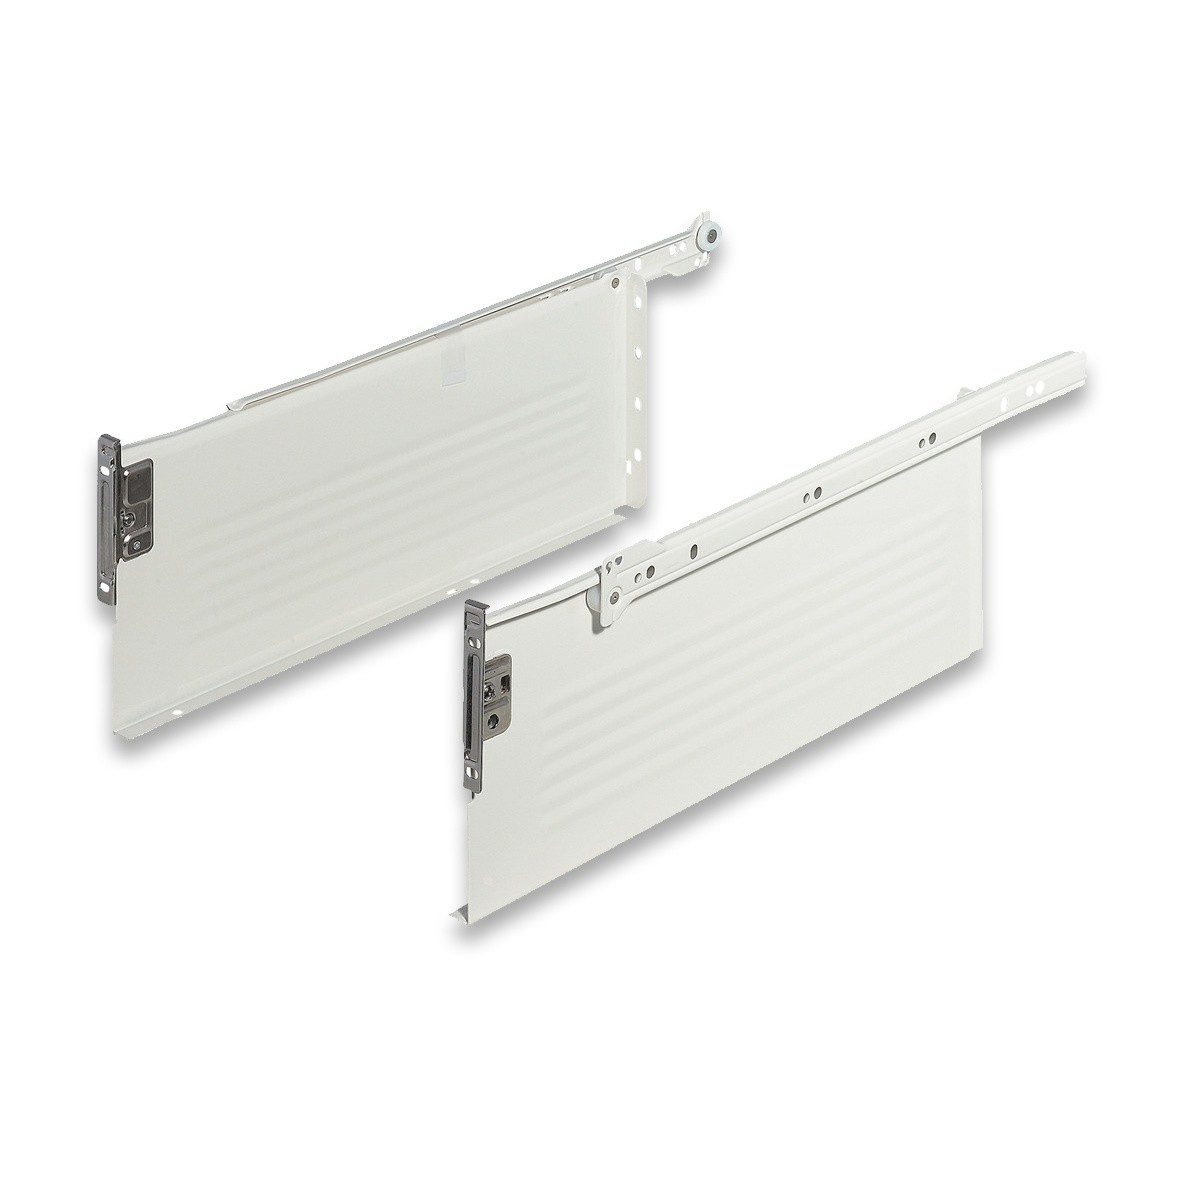 Blum Metabox Extension Slides